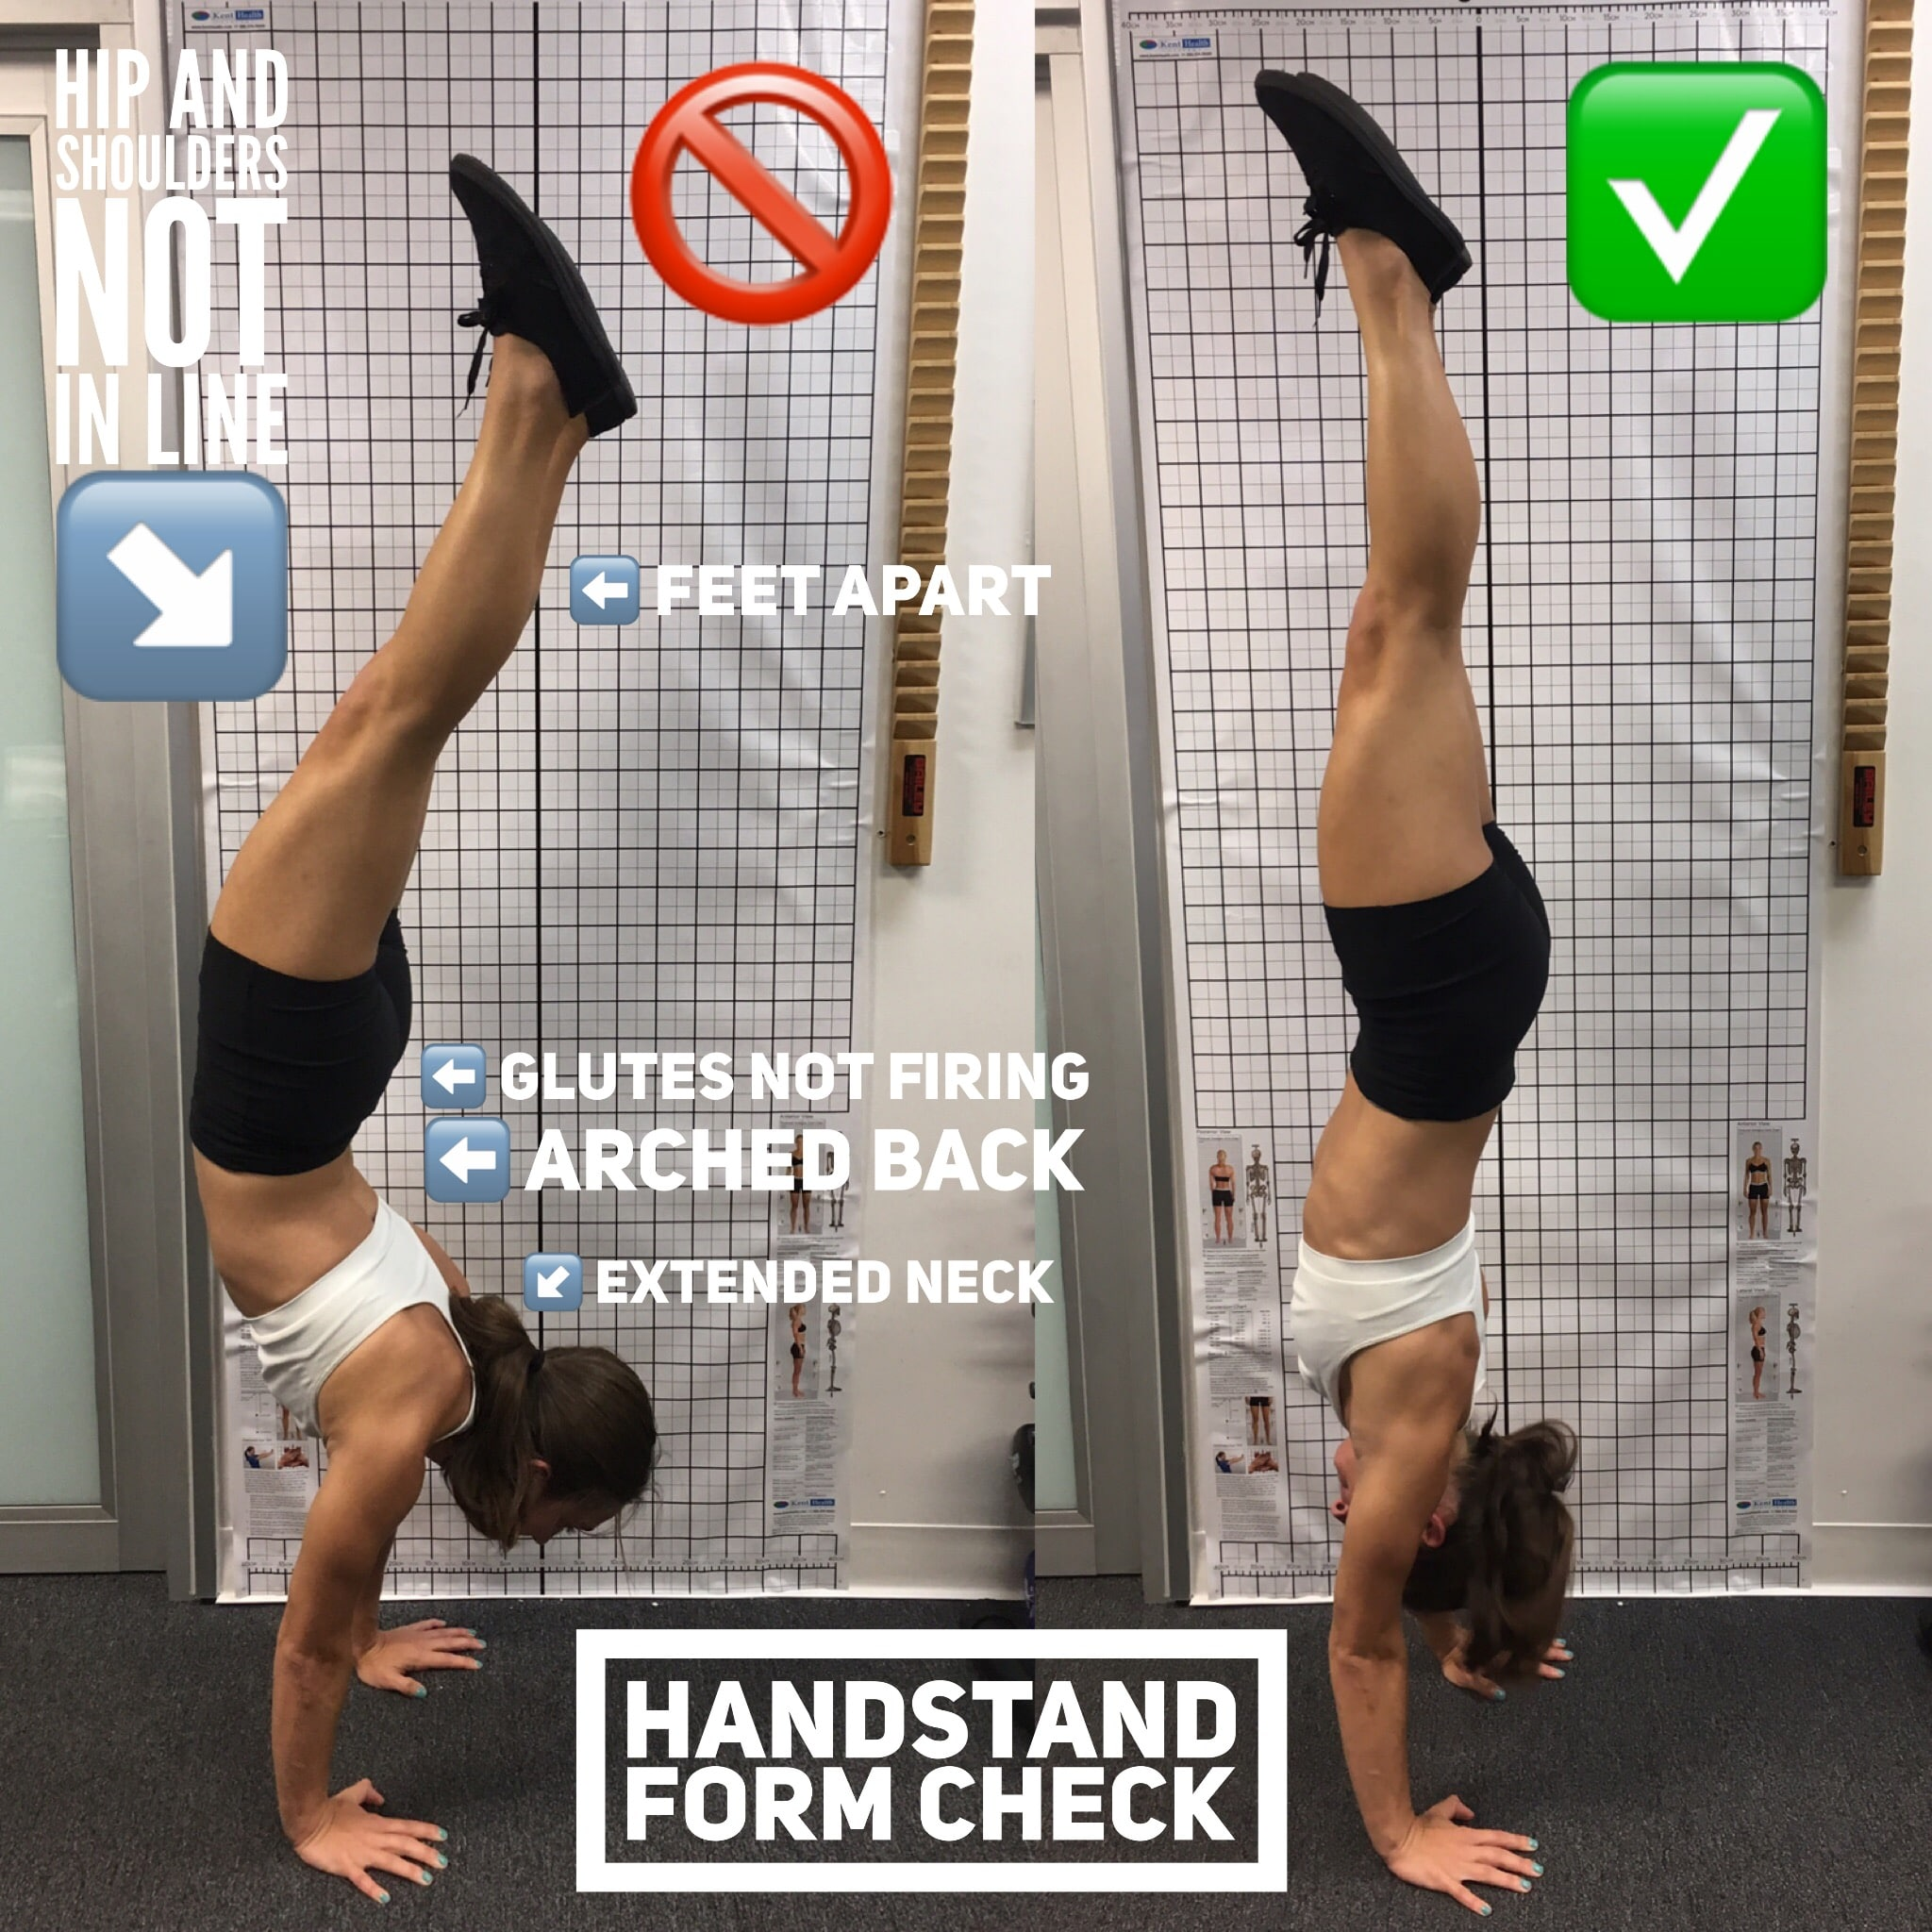 handstand, good form, bad form, gymnastics, tumbling, health, physical therapy